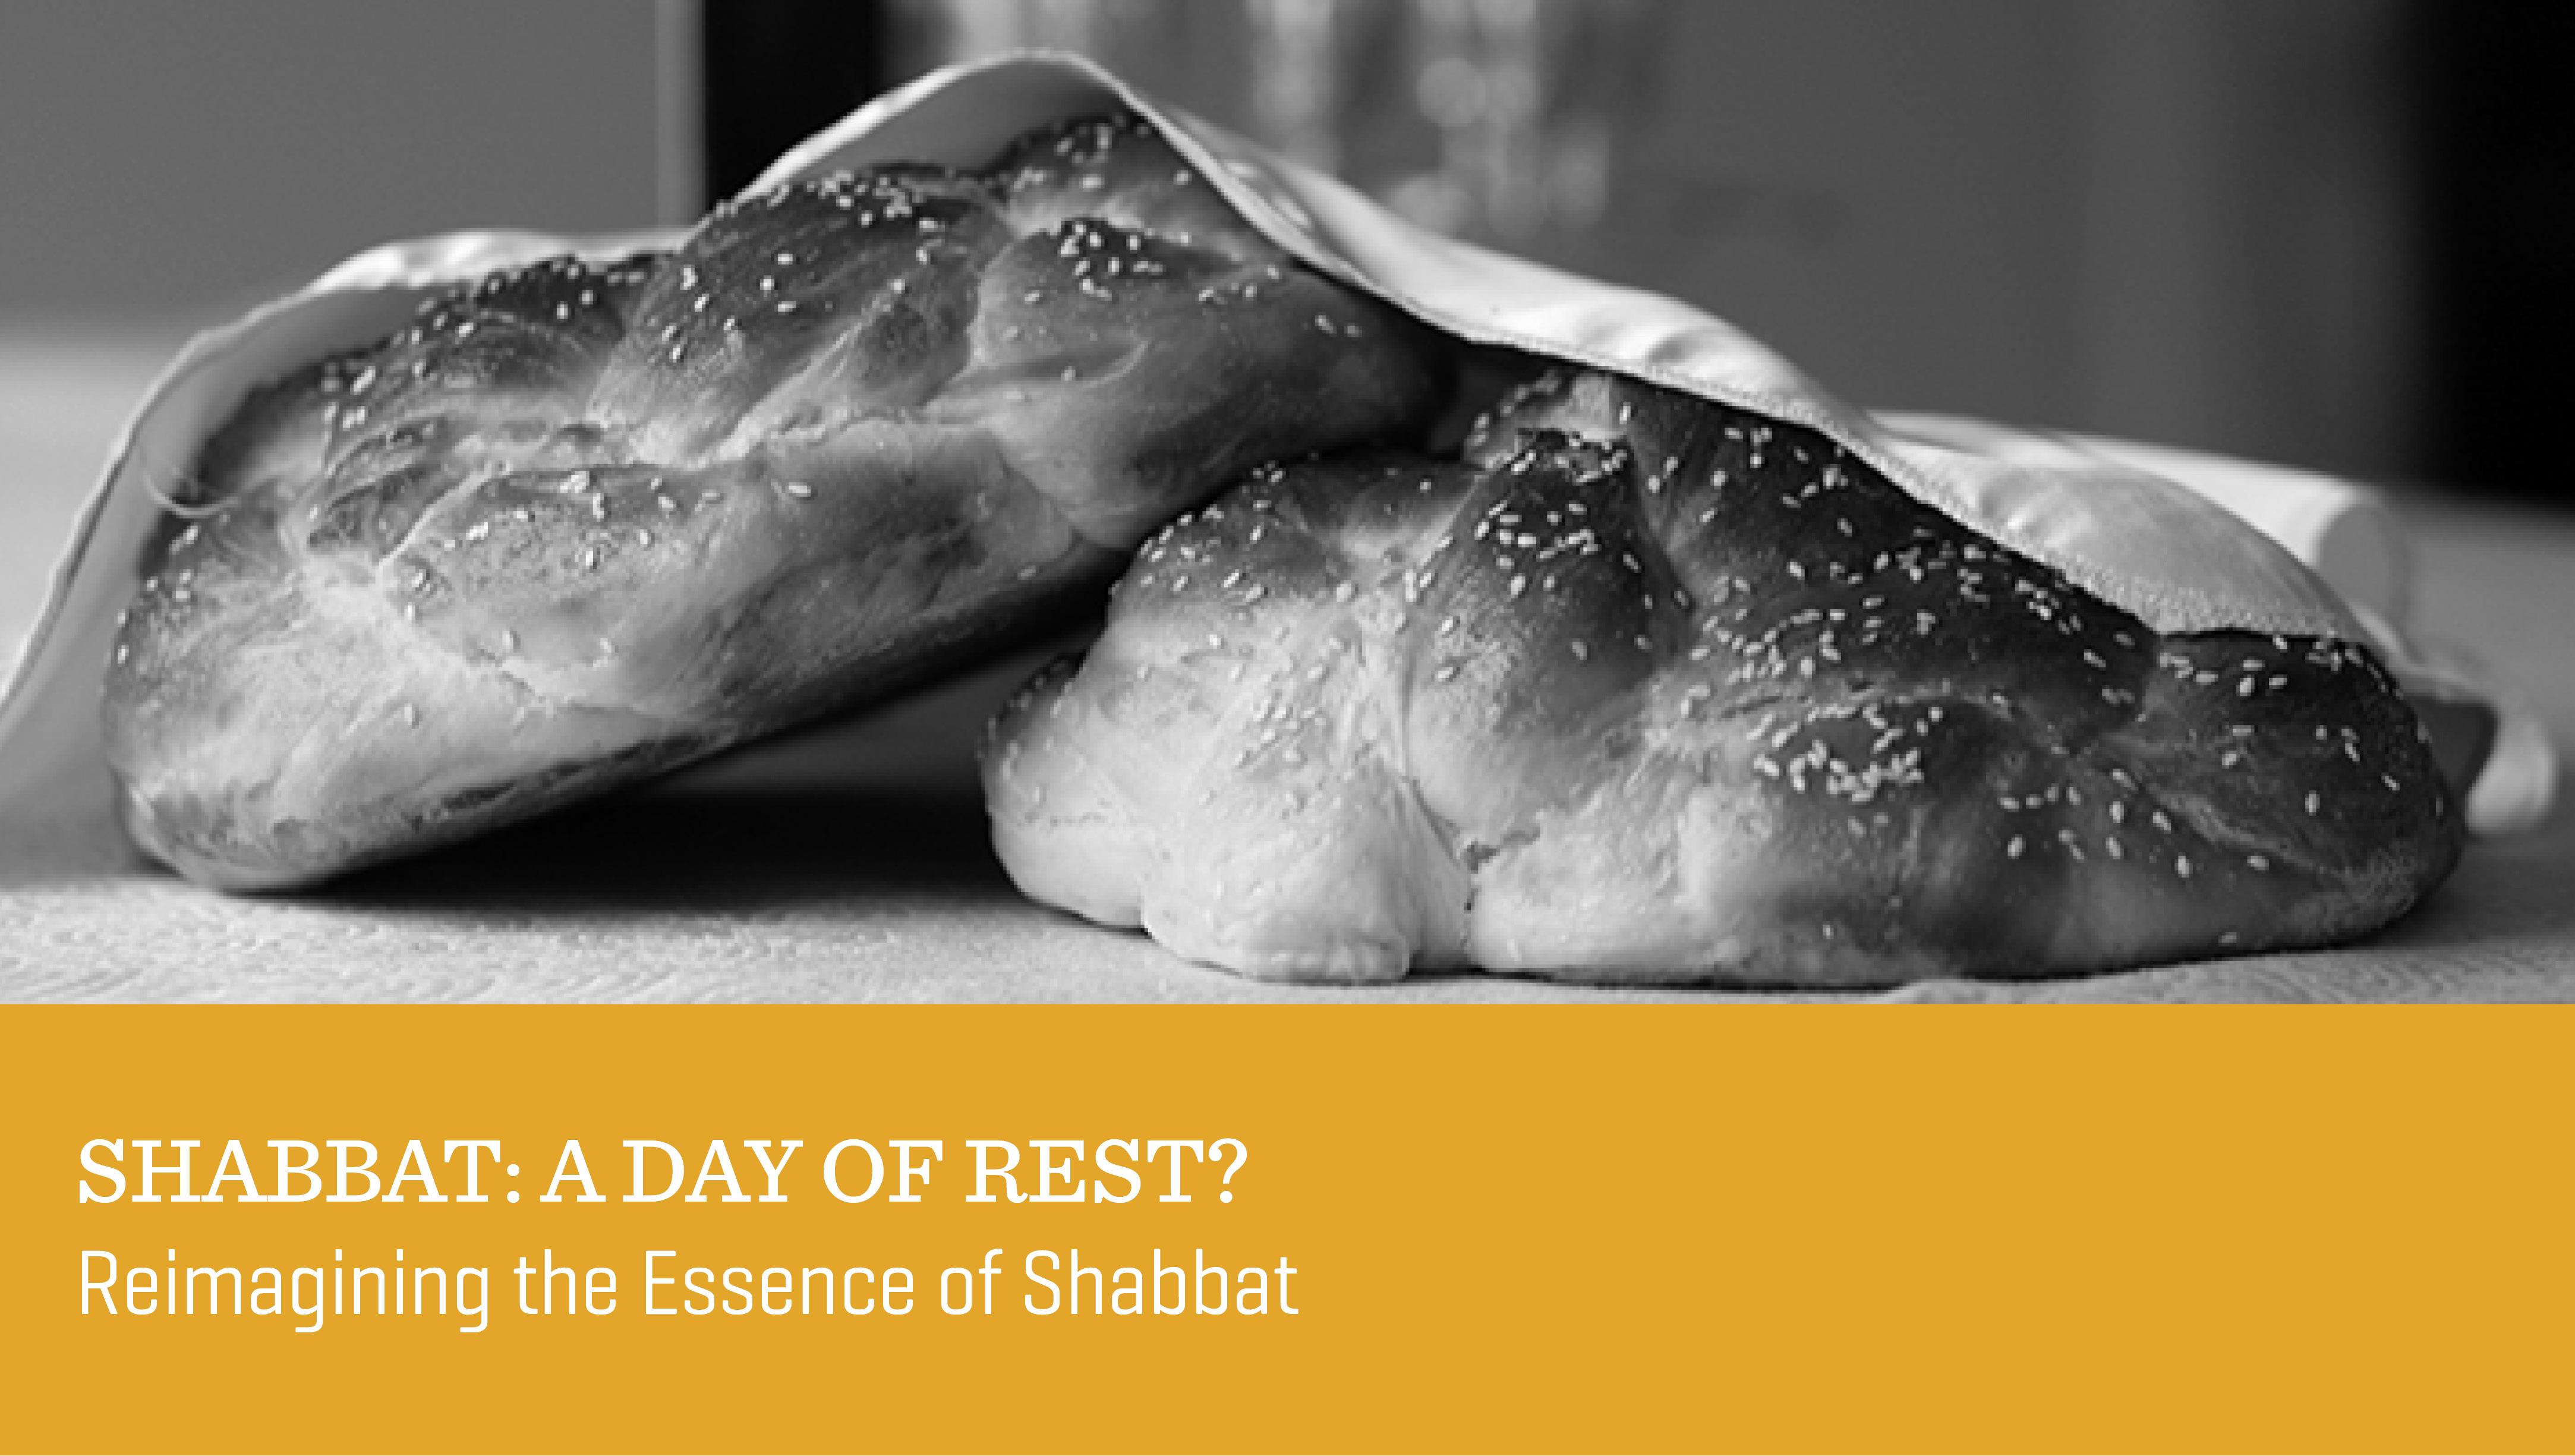 Shabbat: A Day of Rest?